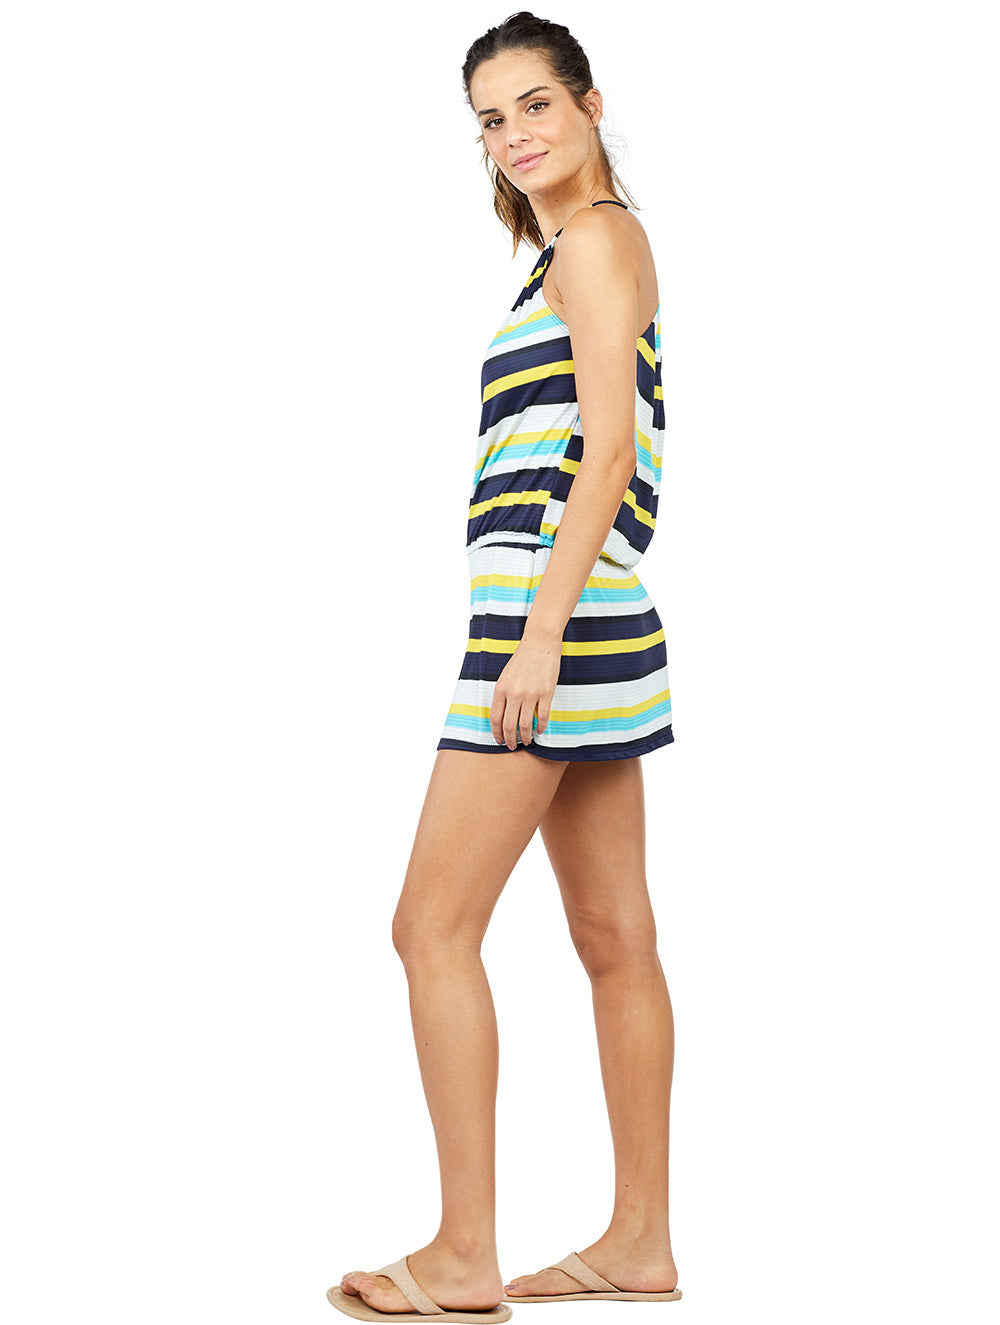 Nassau Short Dress